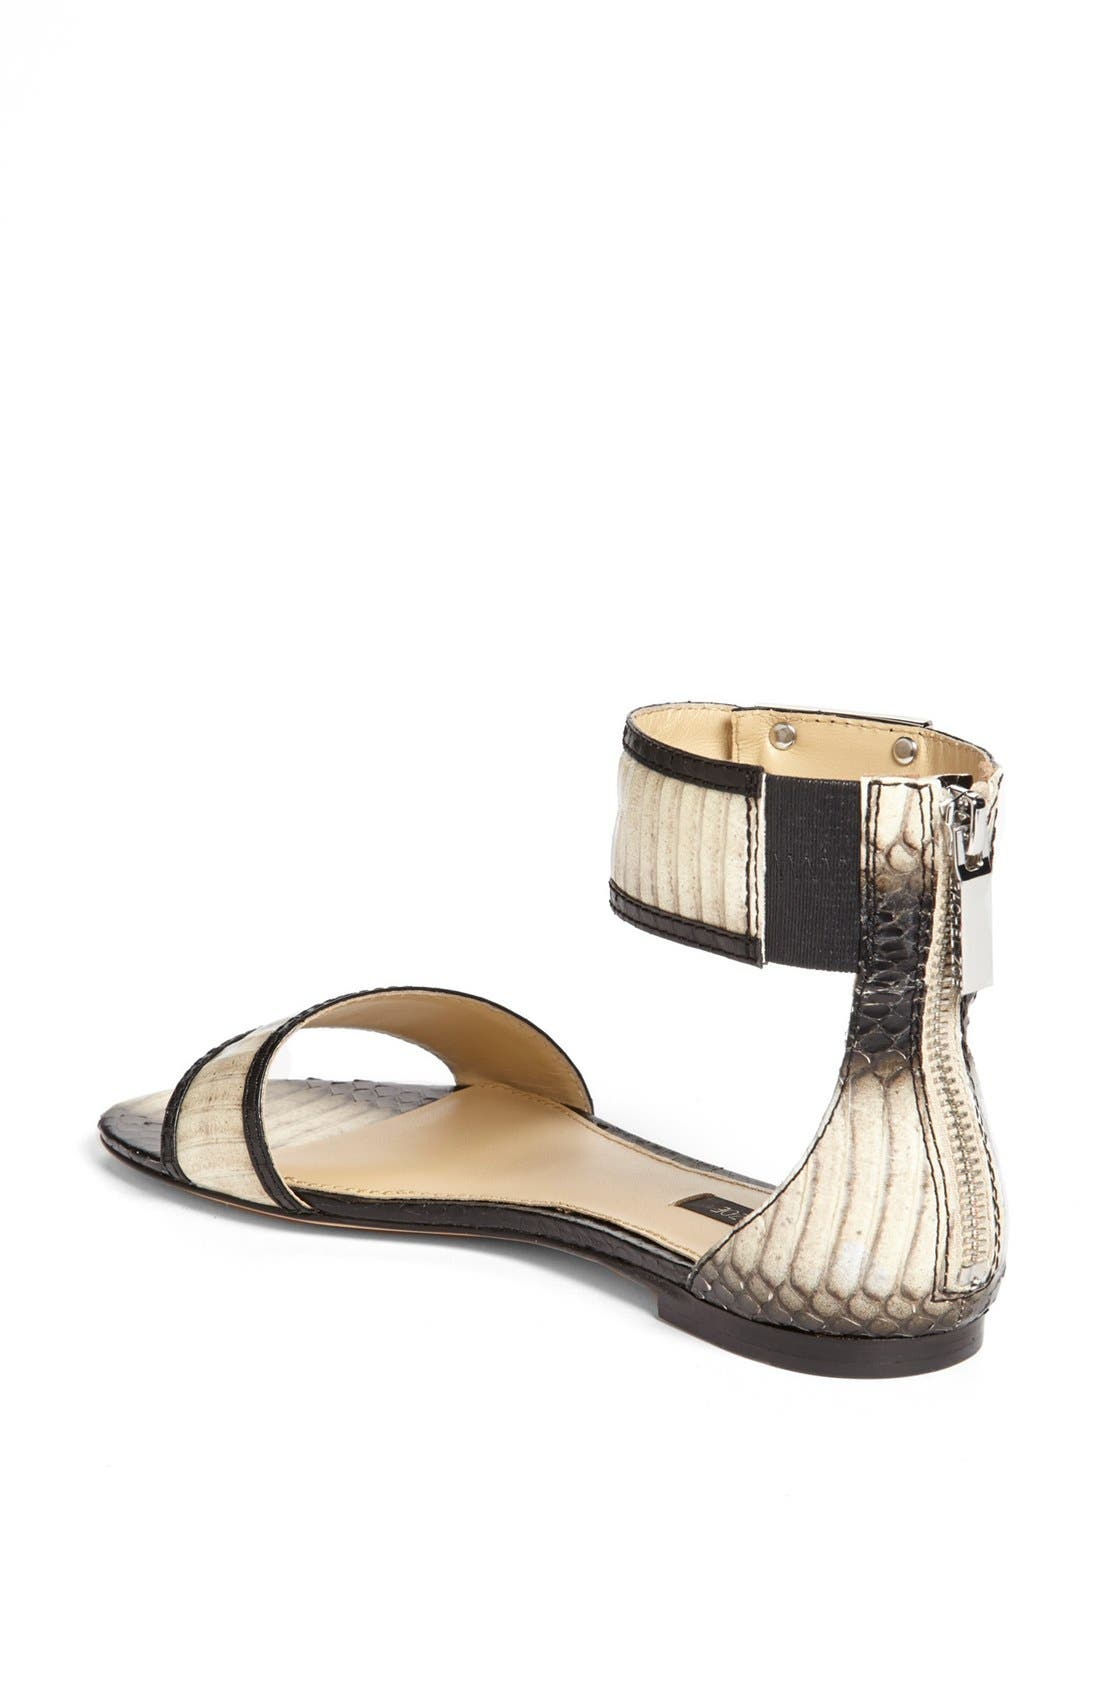 Alternate Image 2  - Rachel Zoe 'Gracie' Genuine Snakeskin Sandal